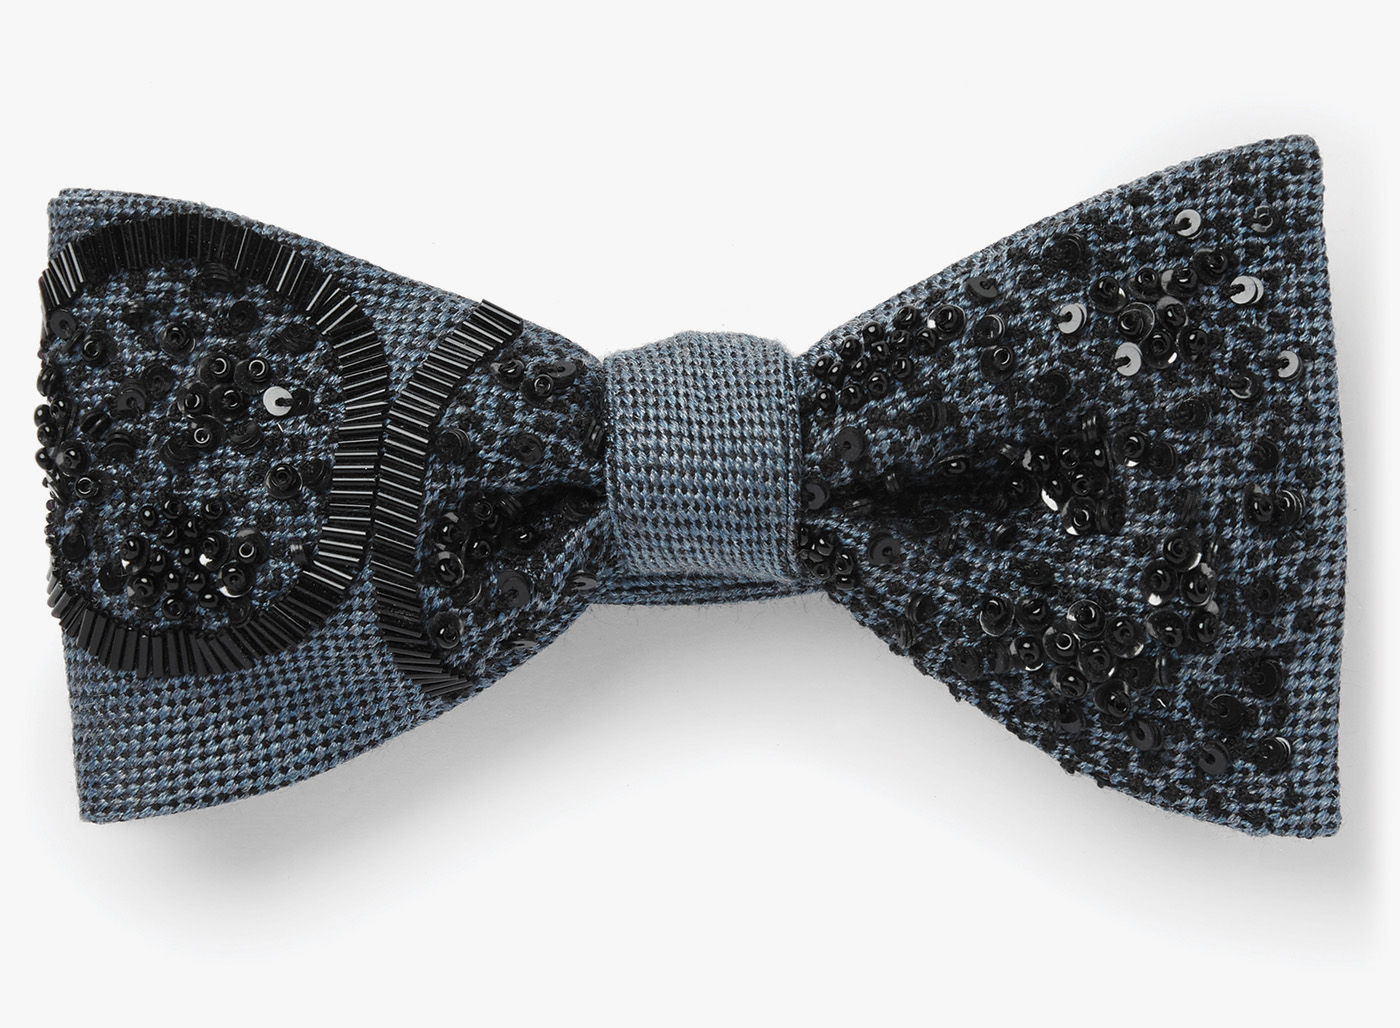 Image of Diatom / Vegetable Bowtie